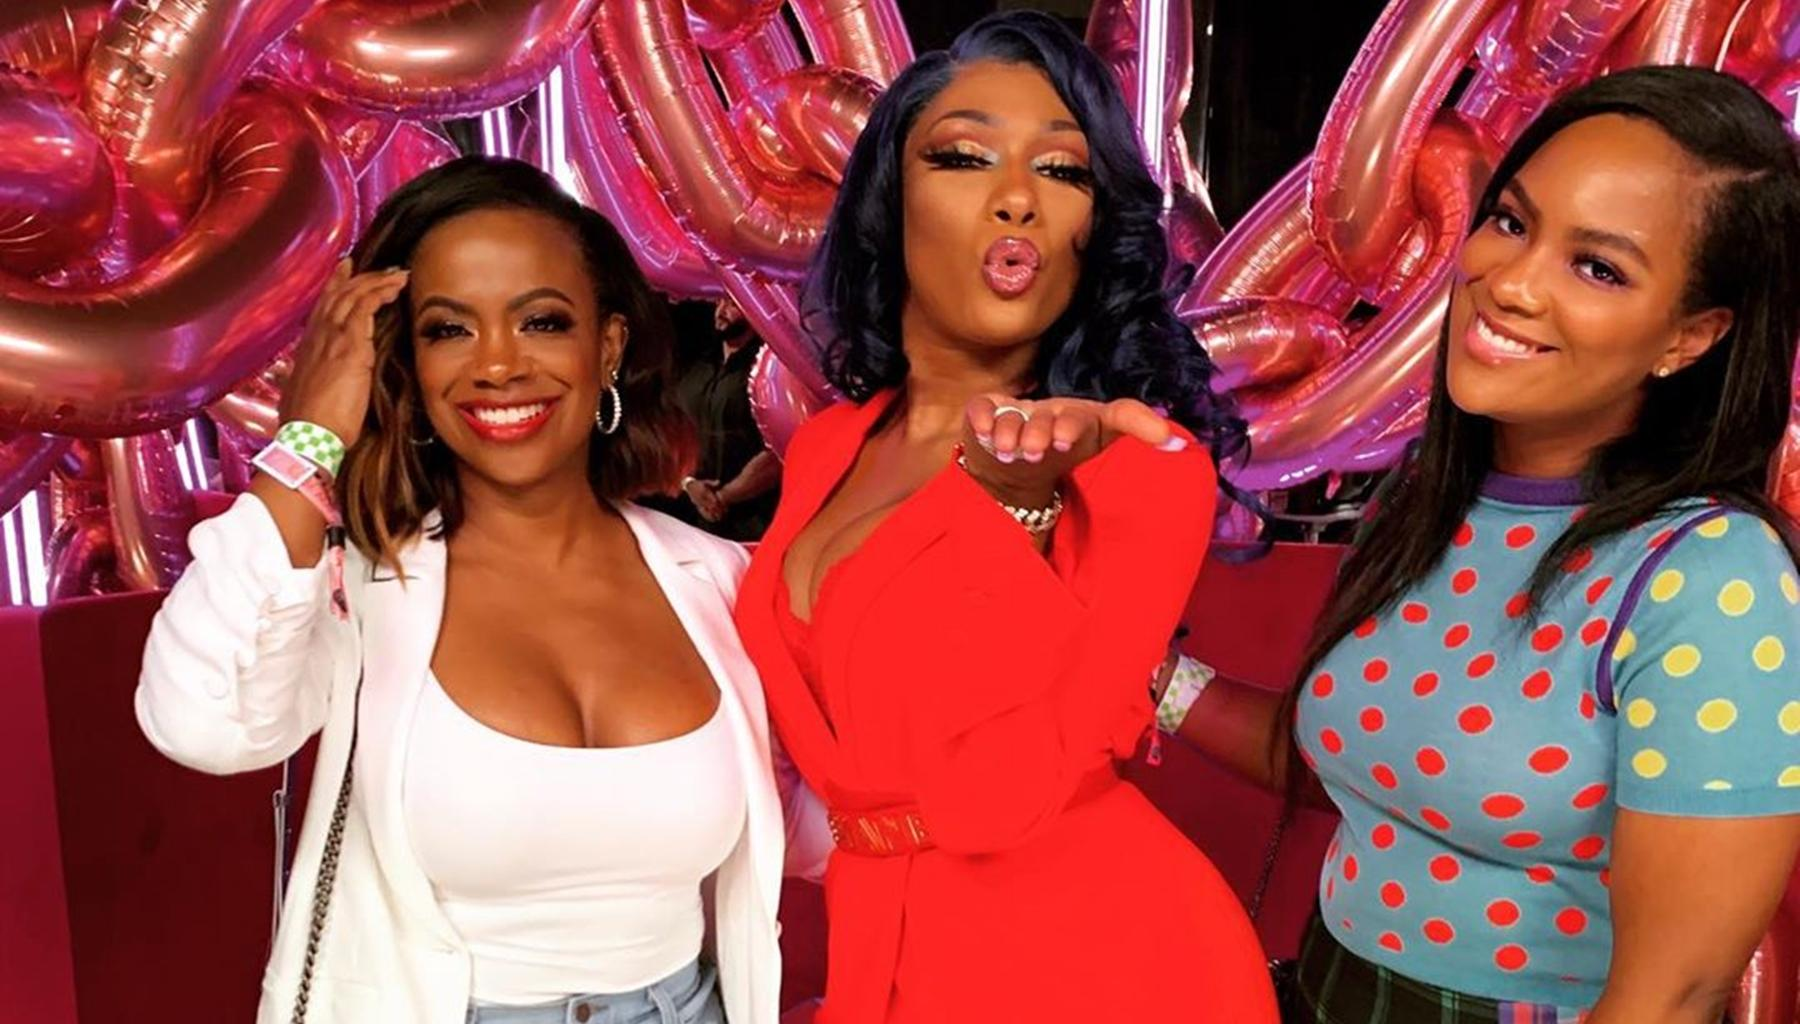 Kandi Burruss Gives The Scoop On Explosive Fights And NeNe Leakes' Transformation On New Season Of 'Real Housewives Of Atlanta'